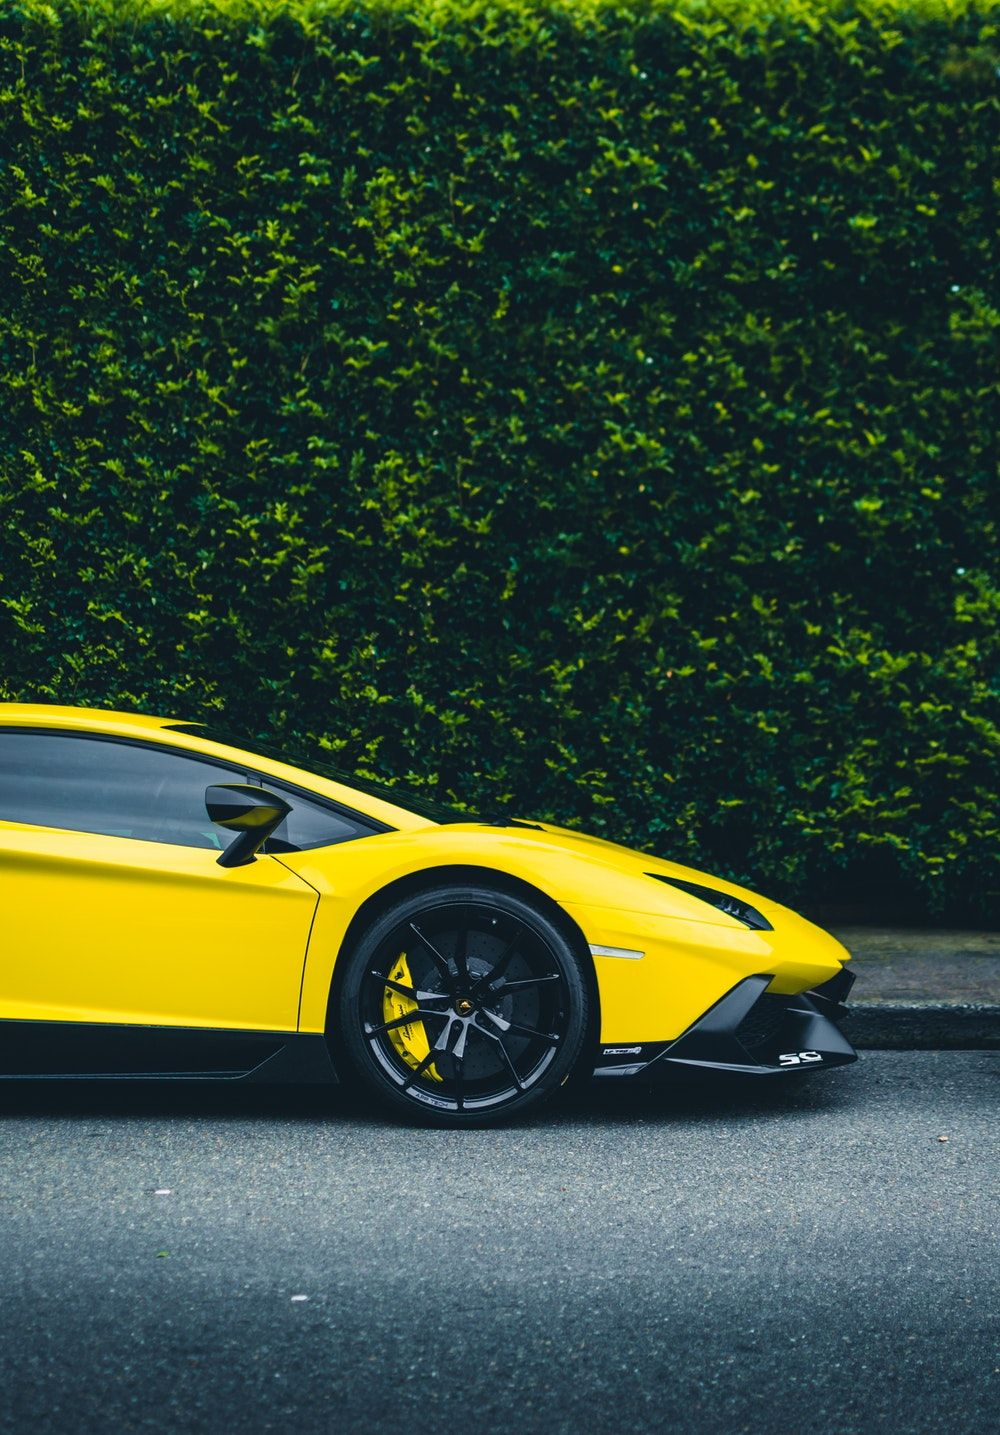 Yellow Lamborghini Coupe Parked Beside Bush Yellow Car Lamborghini Pictures Car